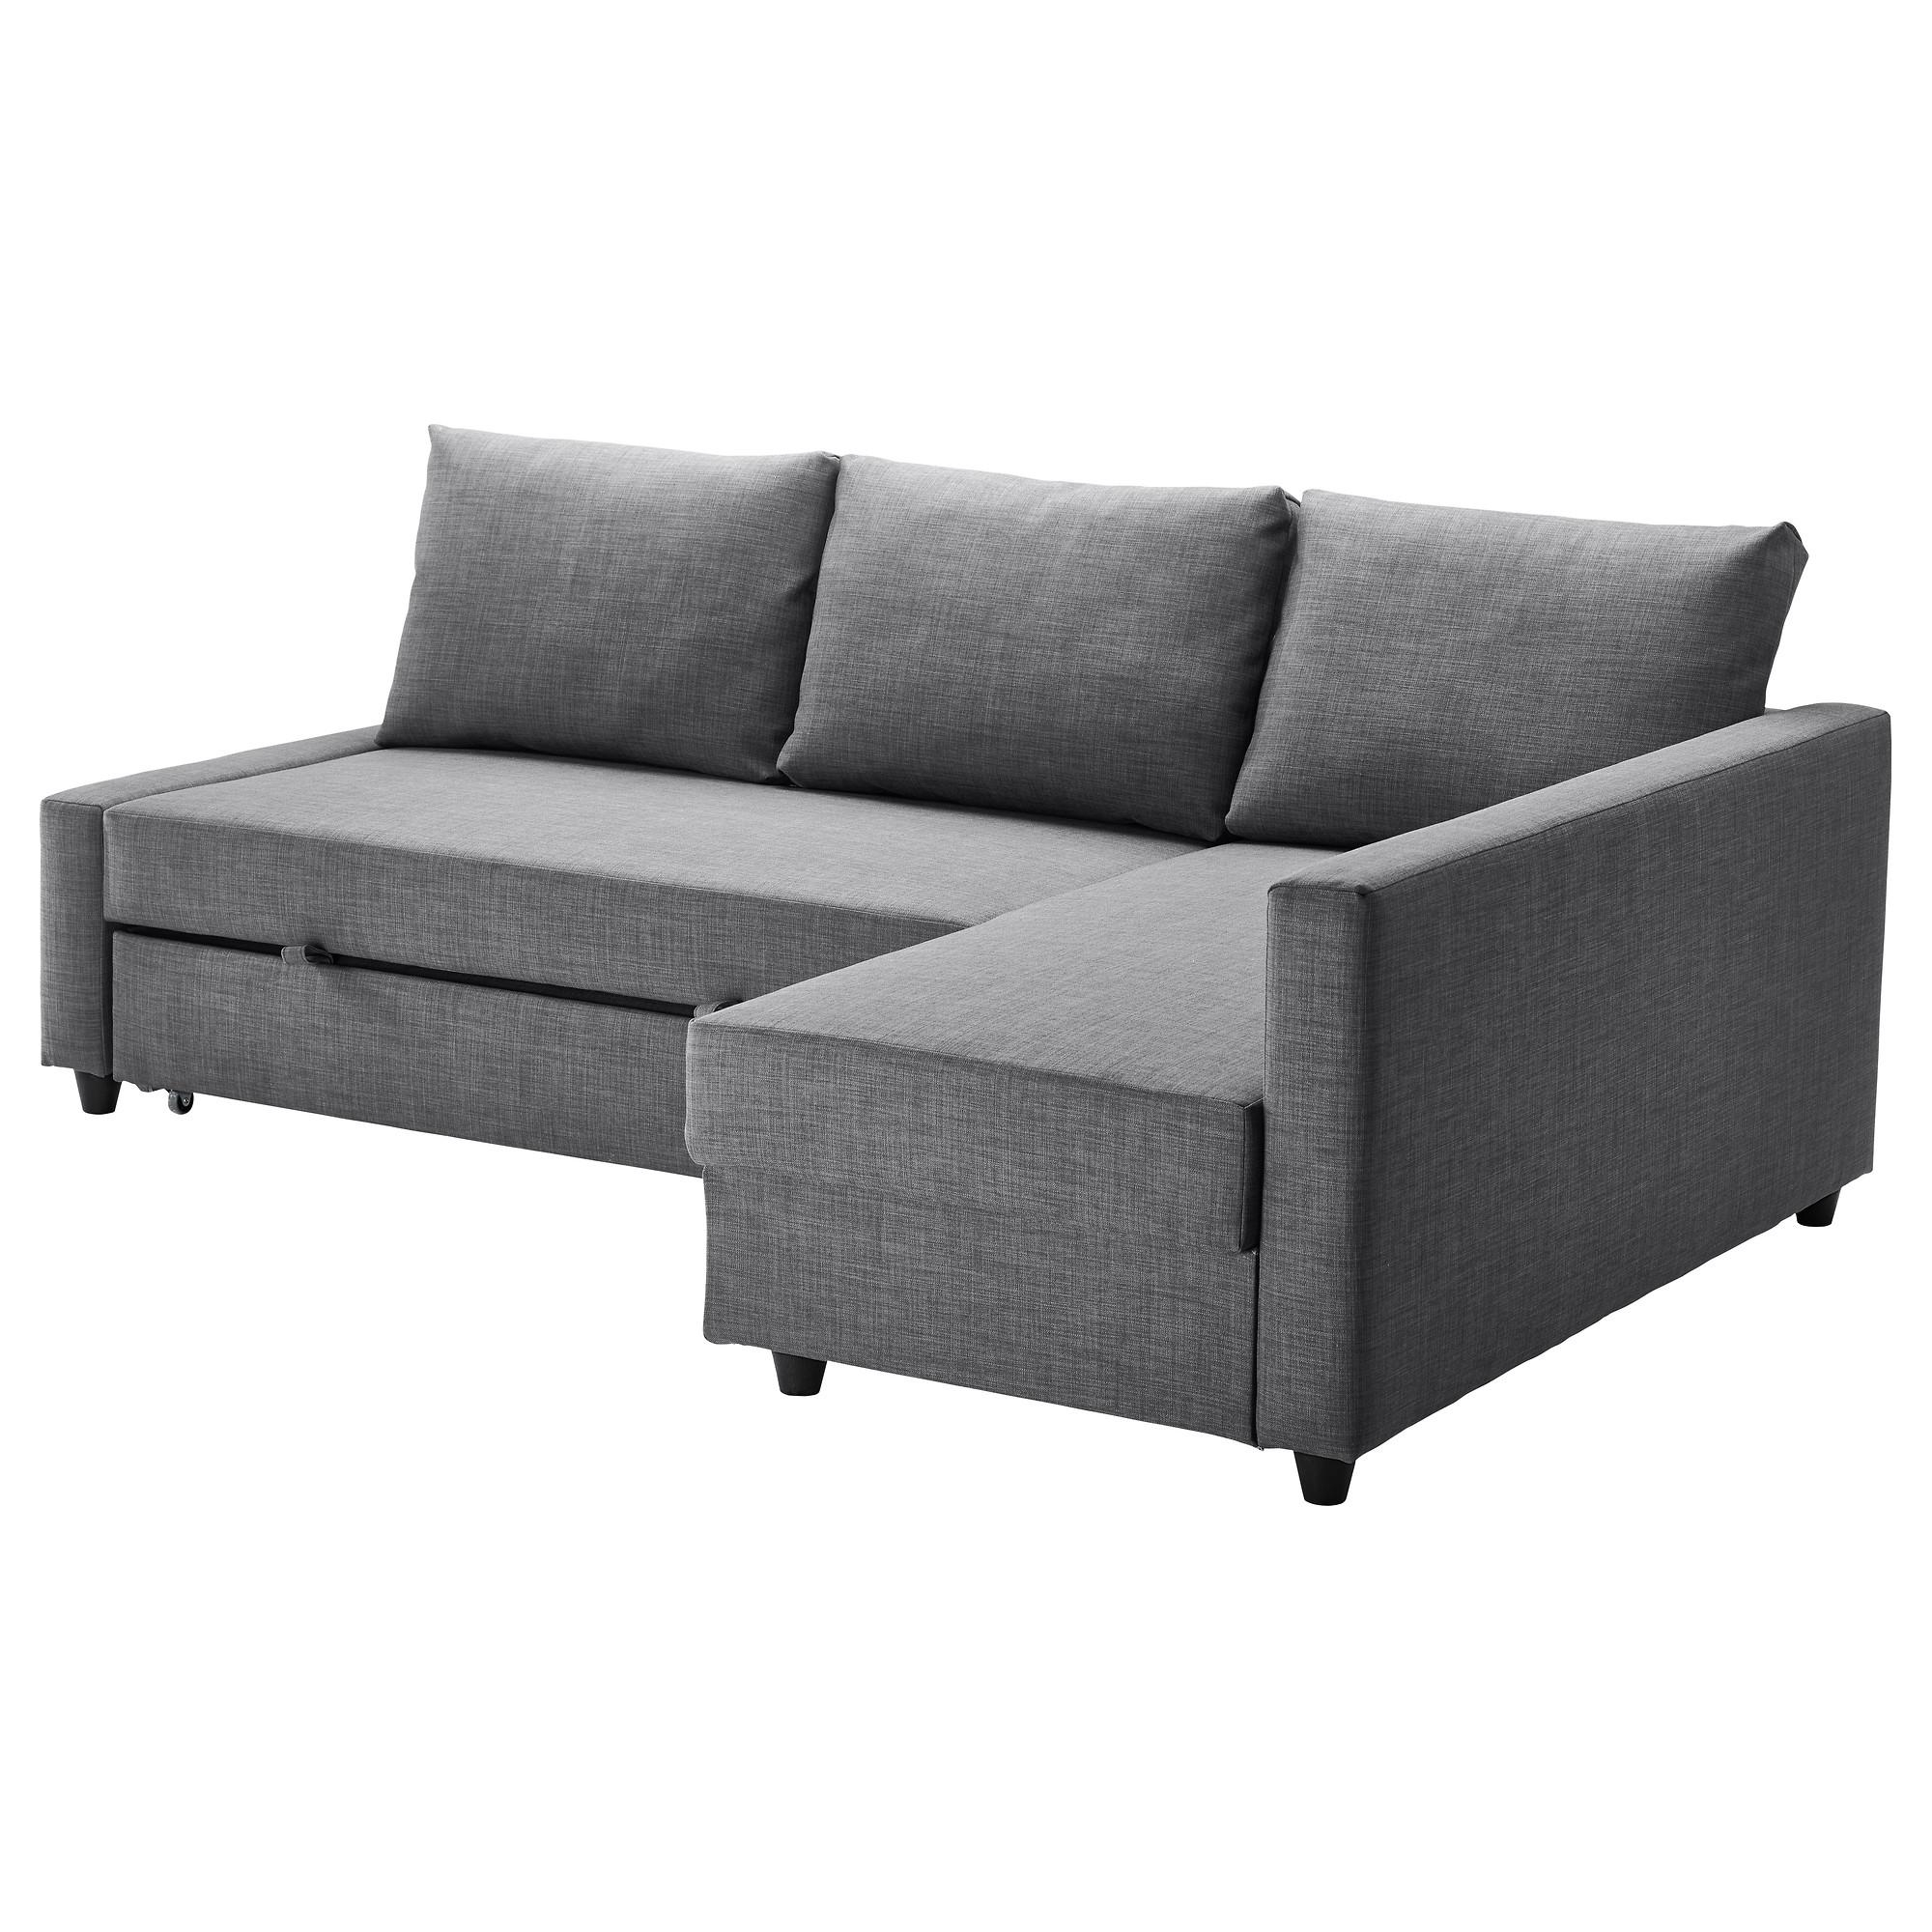 Friheten Corner Sofa Bed With Storage Skiftebo Dark Grey – Ikea For L Shaped Sofa Bed (Image 4 of 20)